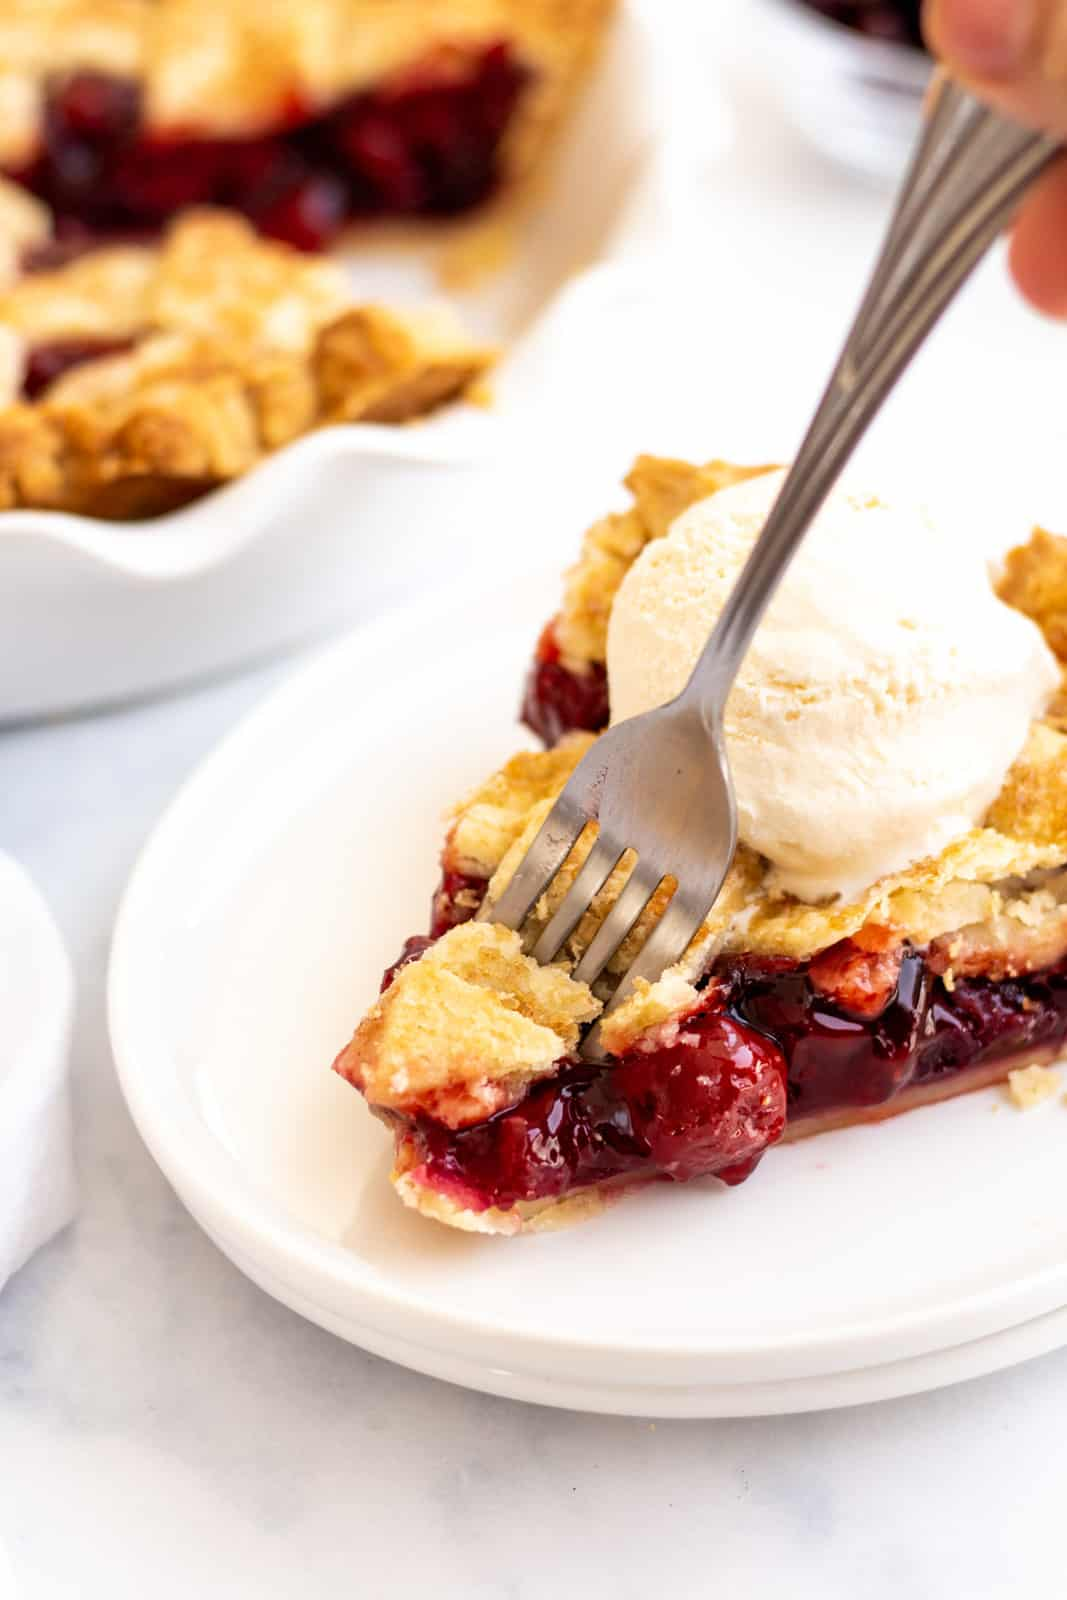 Fork going into slice of Cherry Pie Recipe on white plate